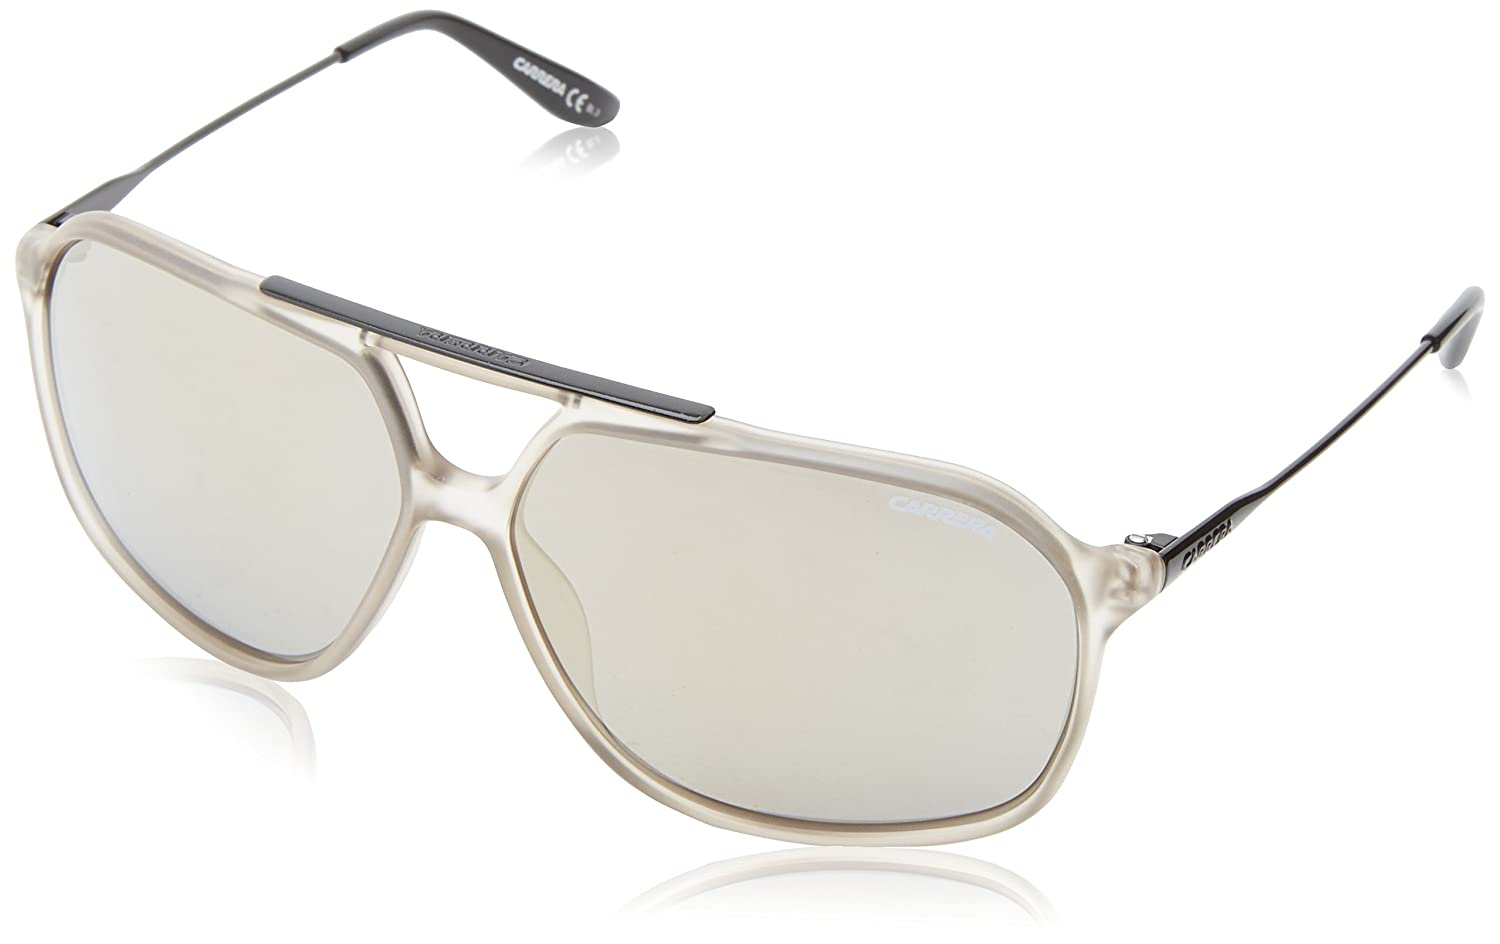 Carrera CA81S Flat-Top Sunglasses Light Gray 63 mm CARRERA81UE_4OI-63